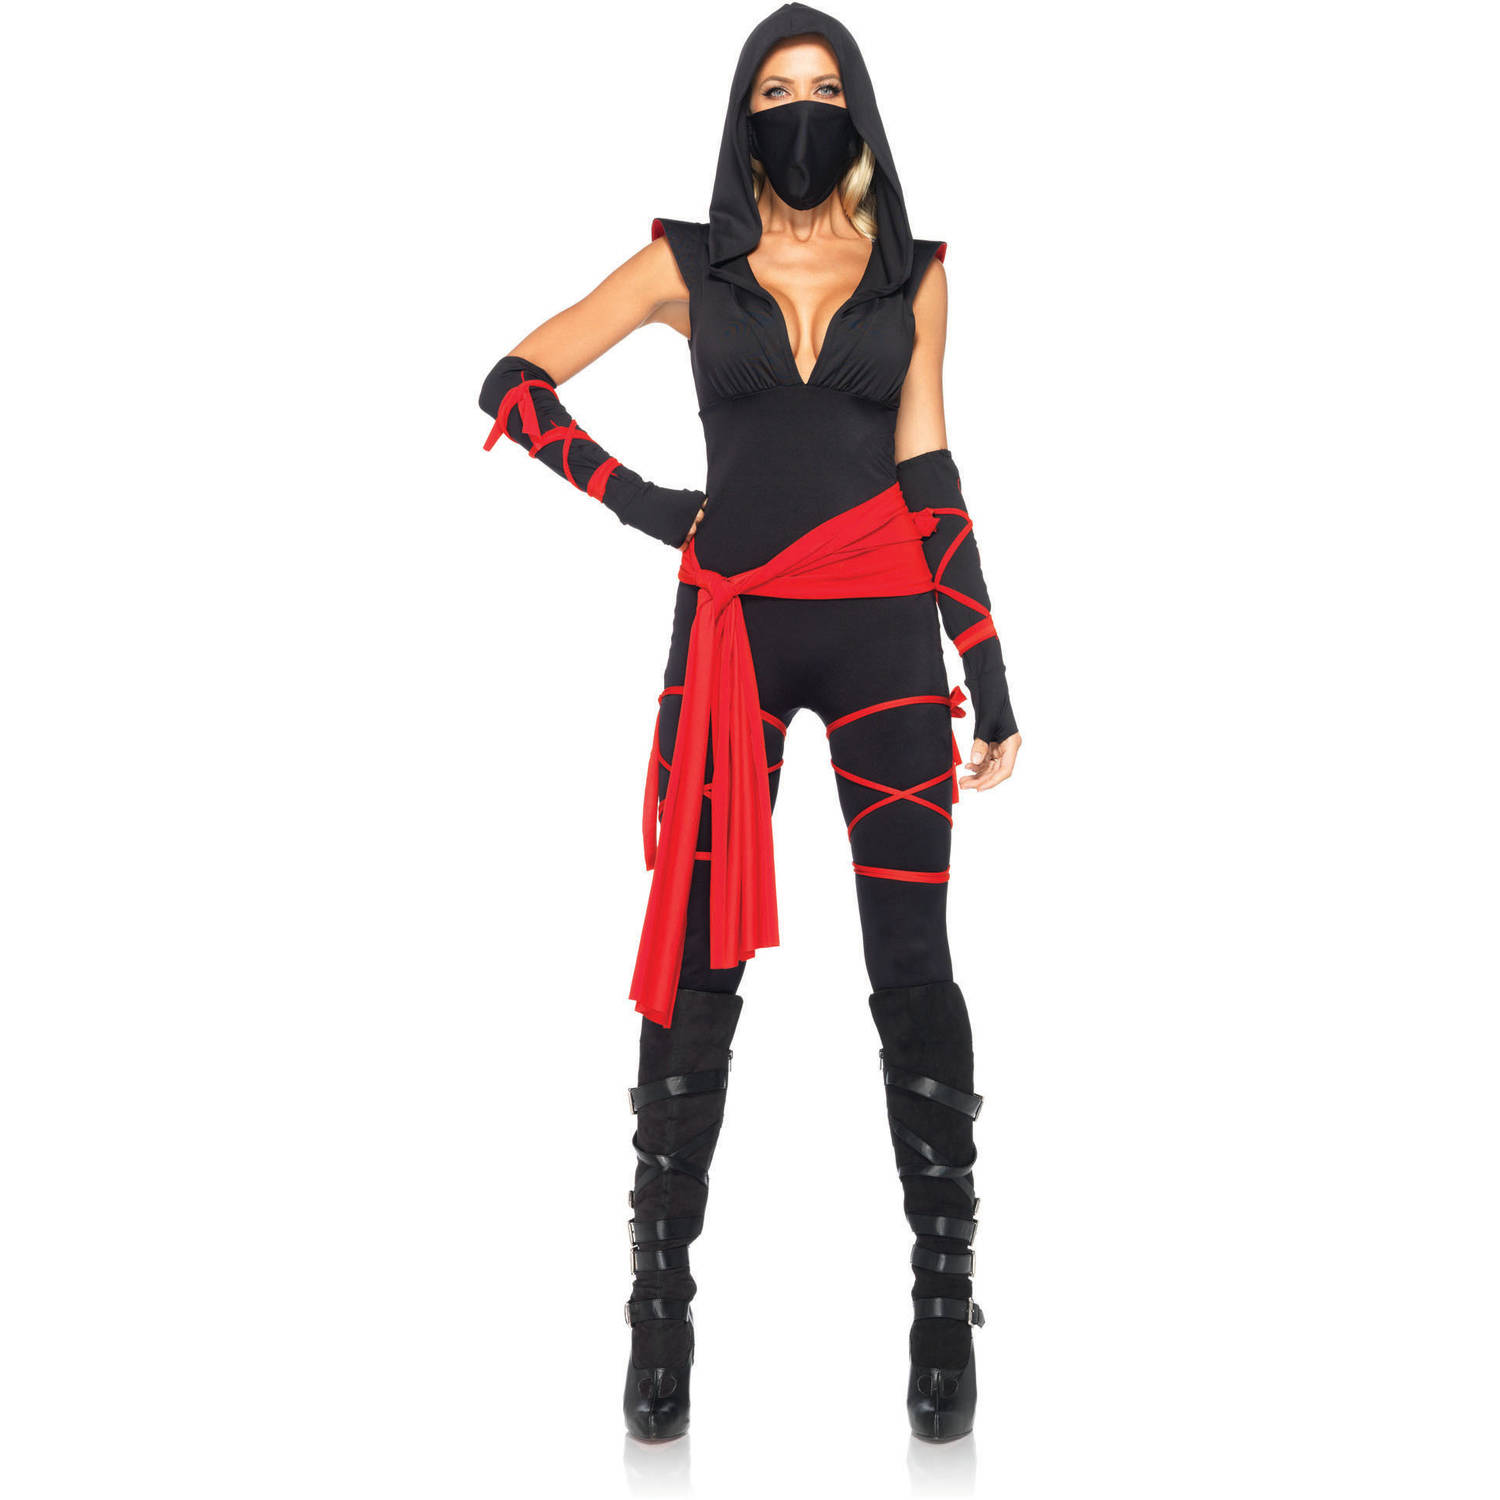 Leg Avenue Deadly Ninja Adult Halloween Costume